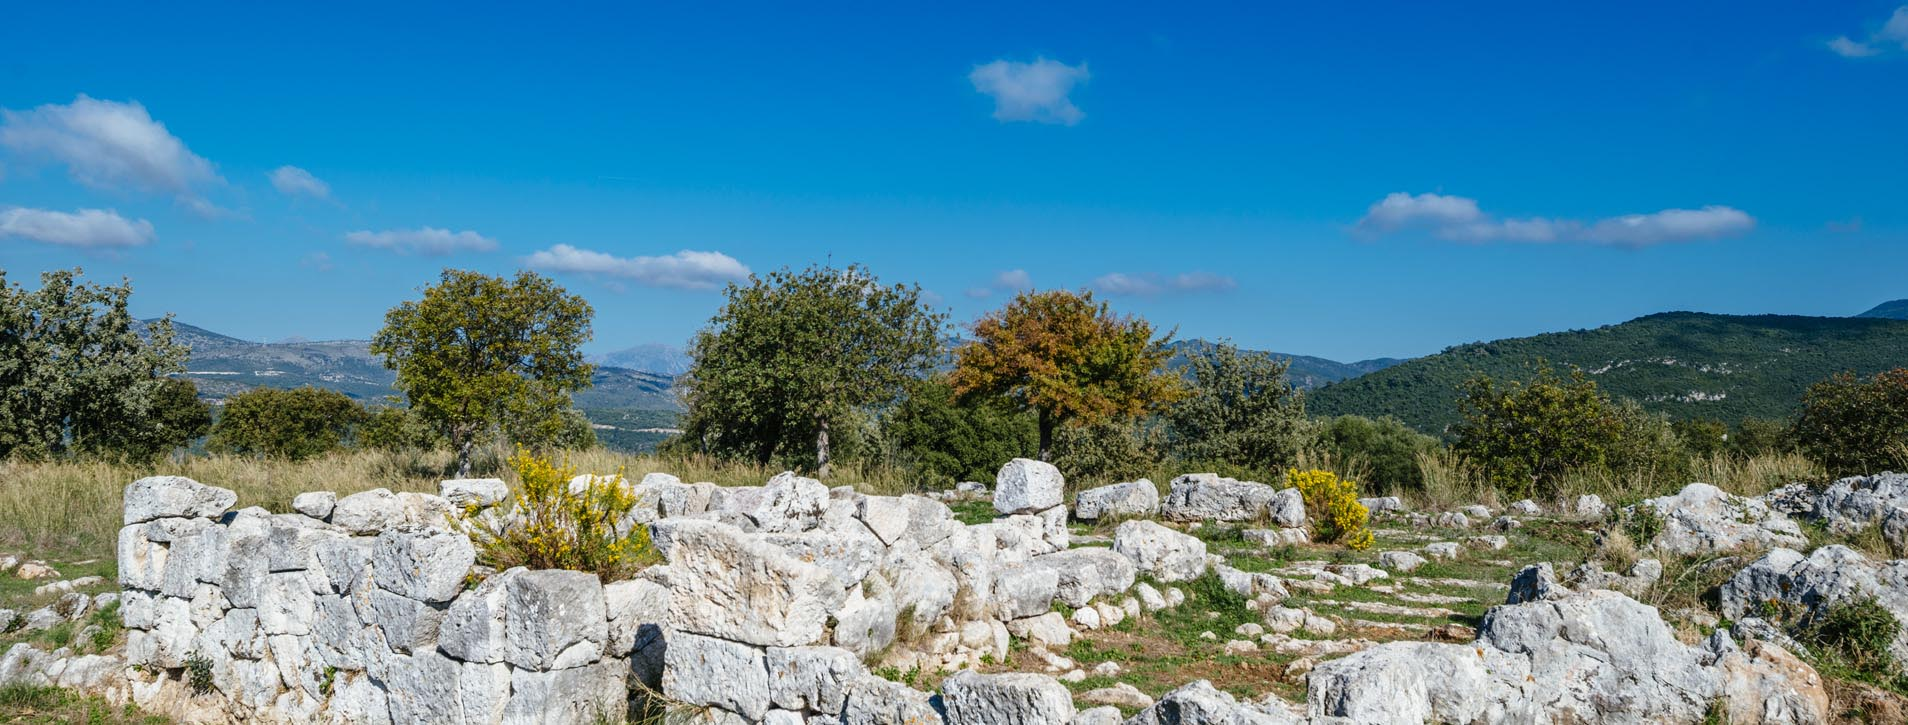 Ancient ruins of Dymokastro, Thesprotia